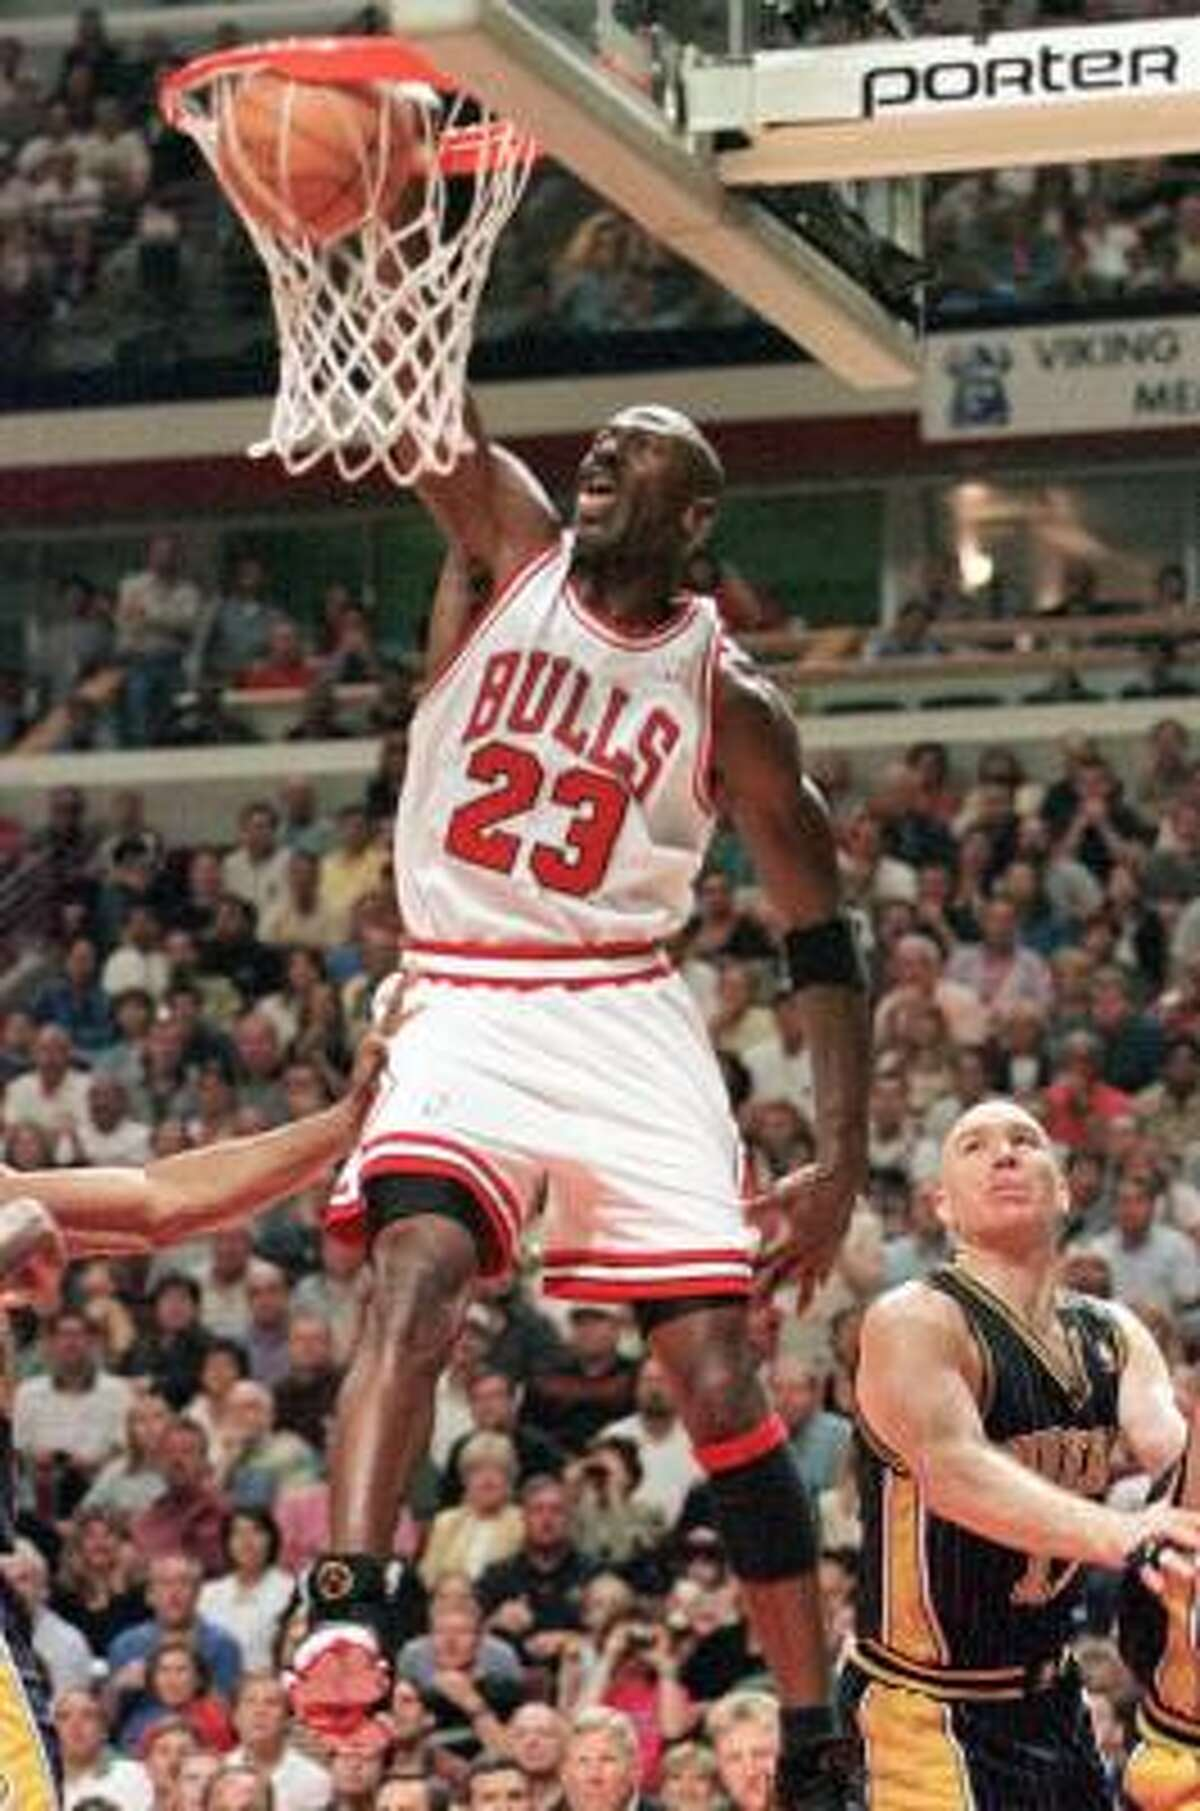 Michael Jordan The iconic Jordan, regarded by many as the game's greatest player, played 14 seasons in the NBA, averaging an all-time best 30.1 points per game along with 6.2 rebounds per game. He won six NBA titles with the Chicago Bulls.